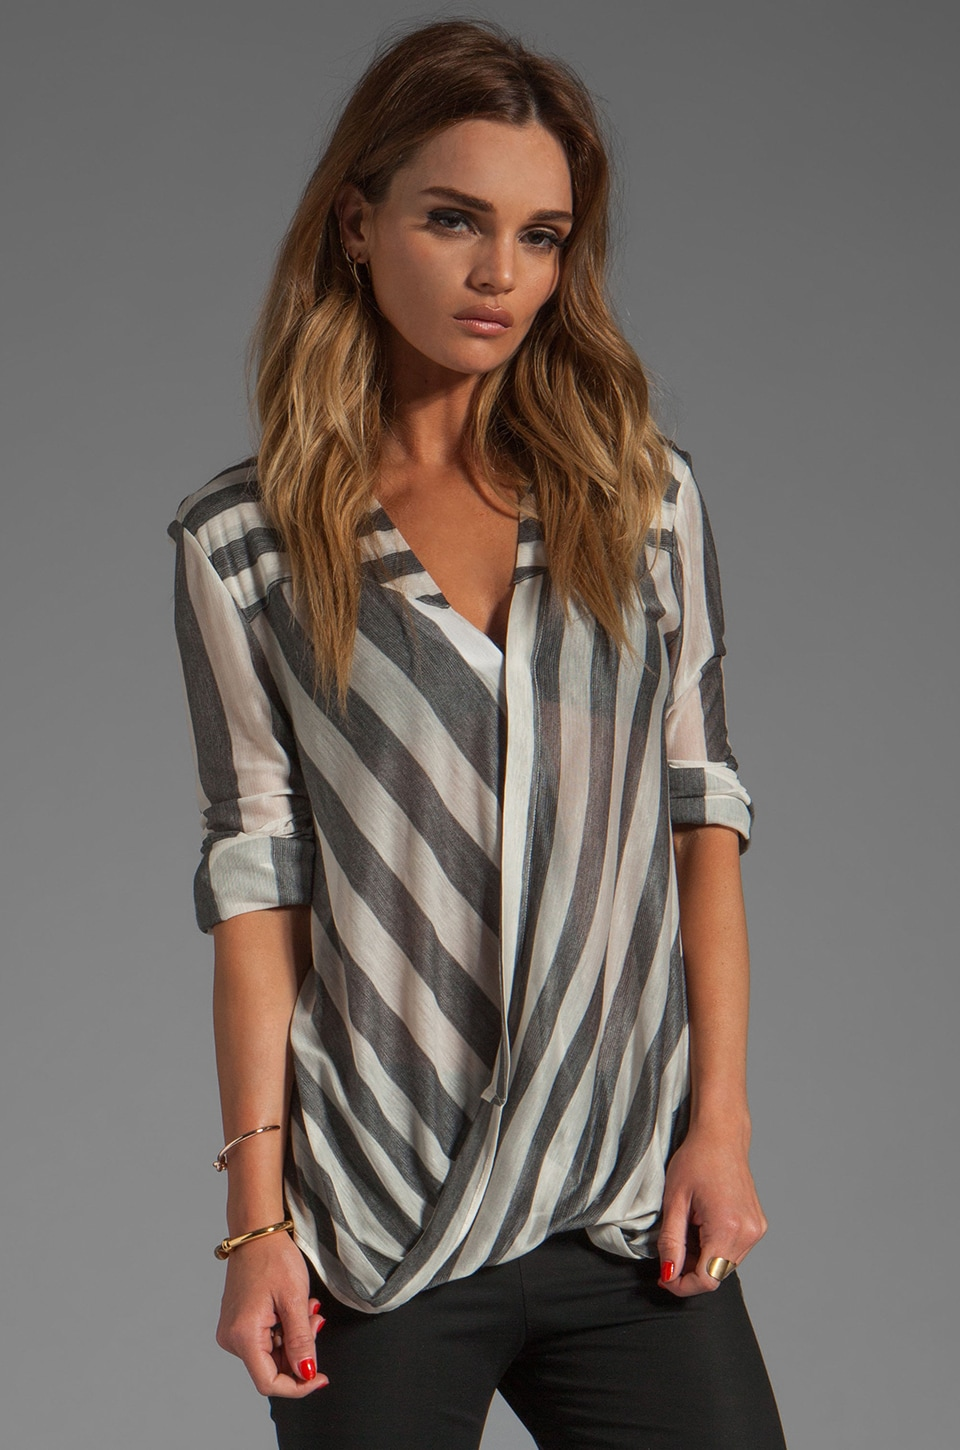 DEREK LAM 10 CROSBY Drape Front Blouse in Grey Stripe